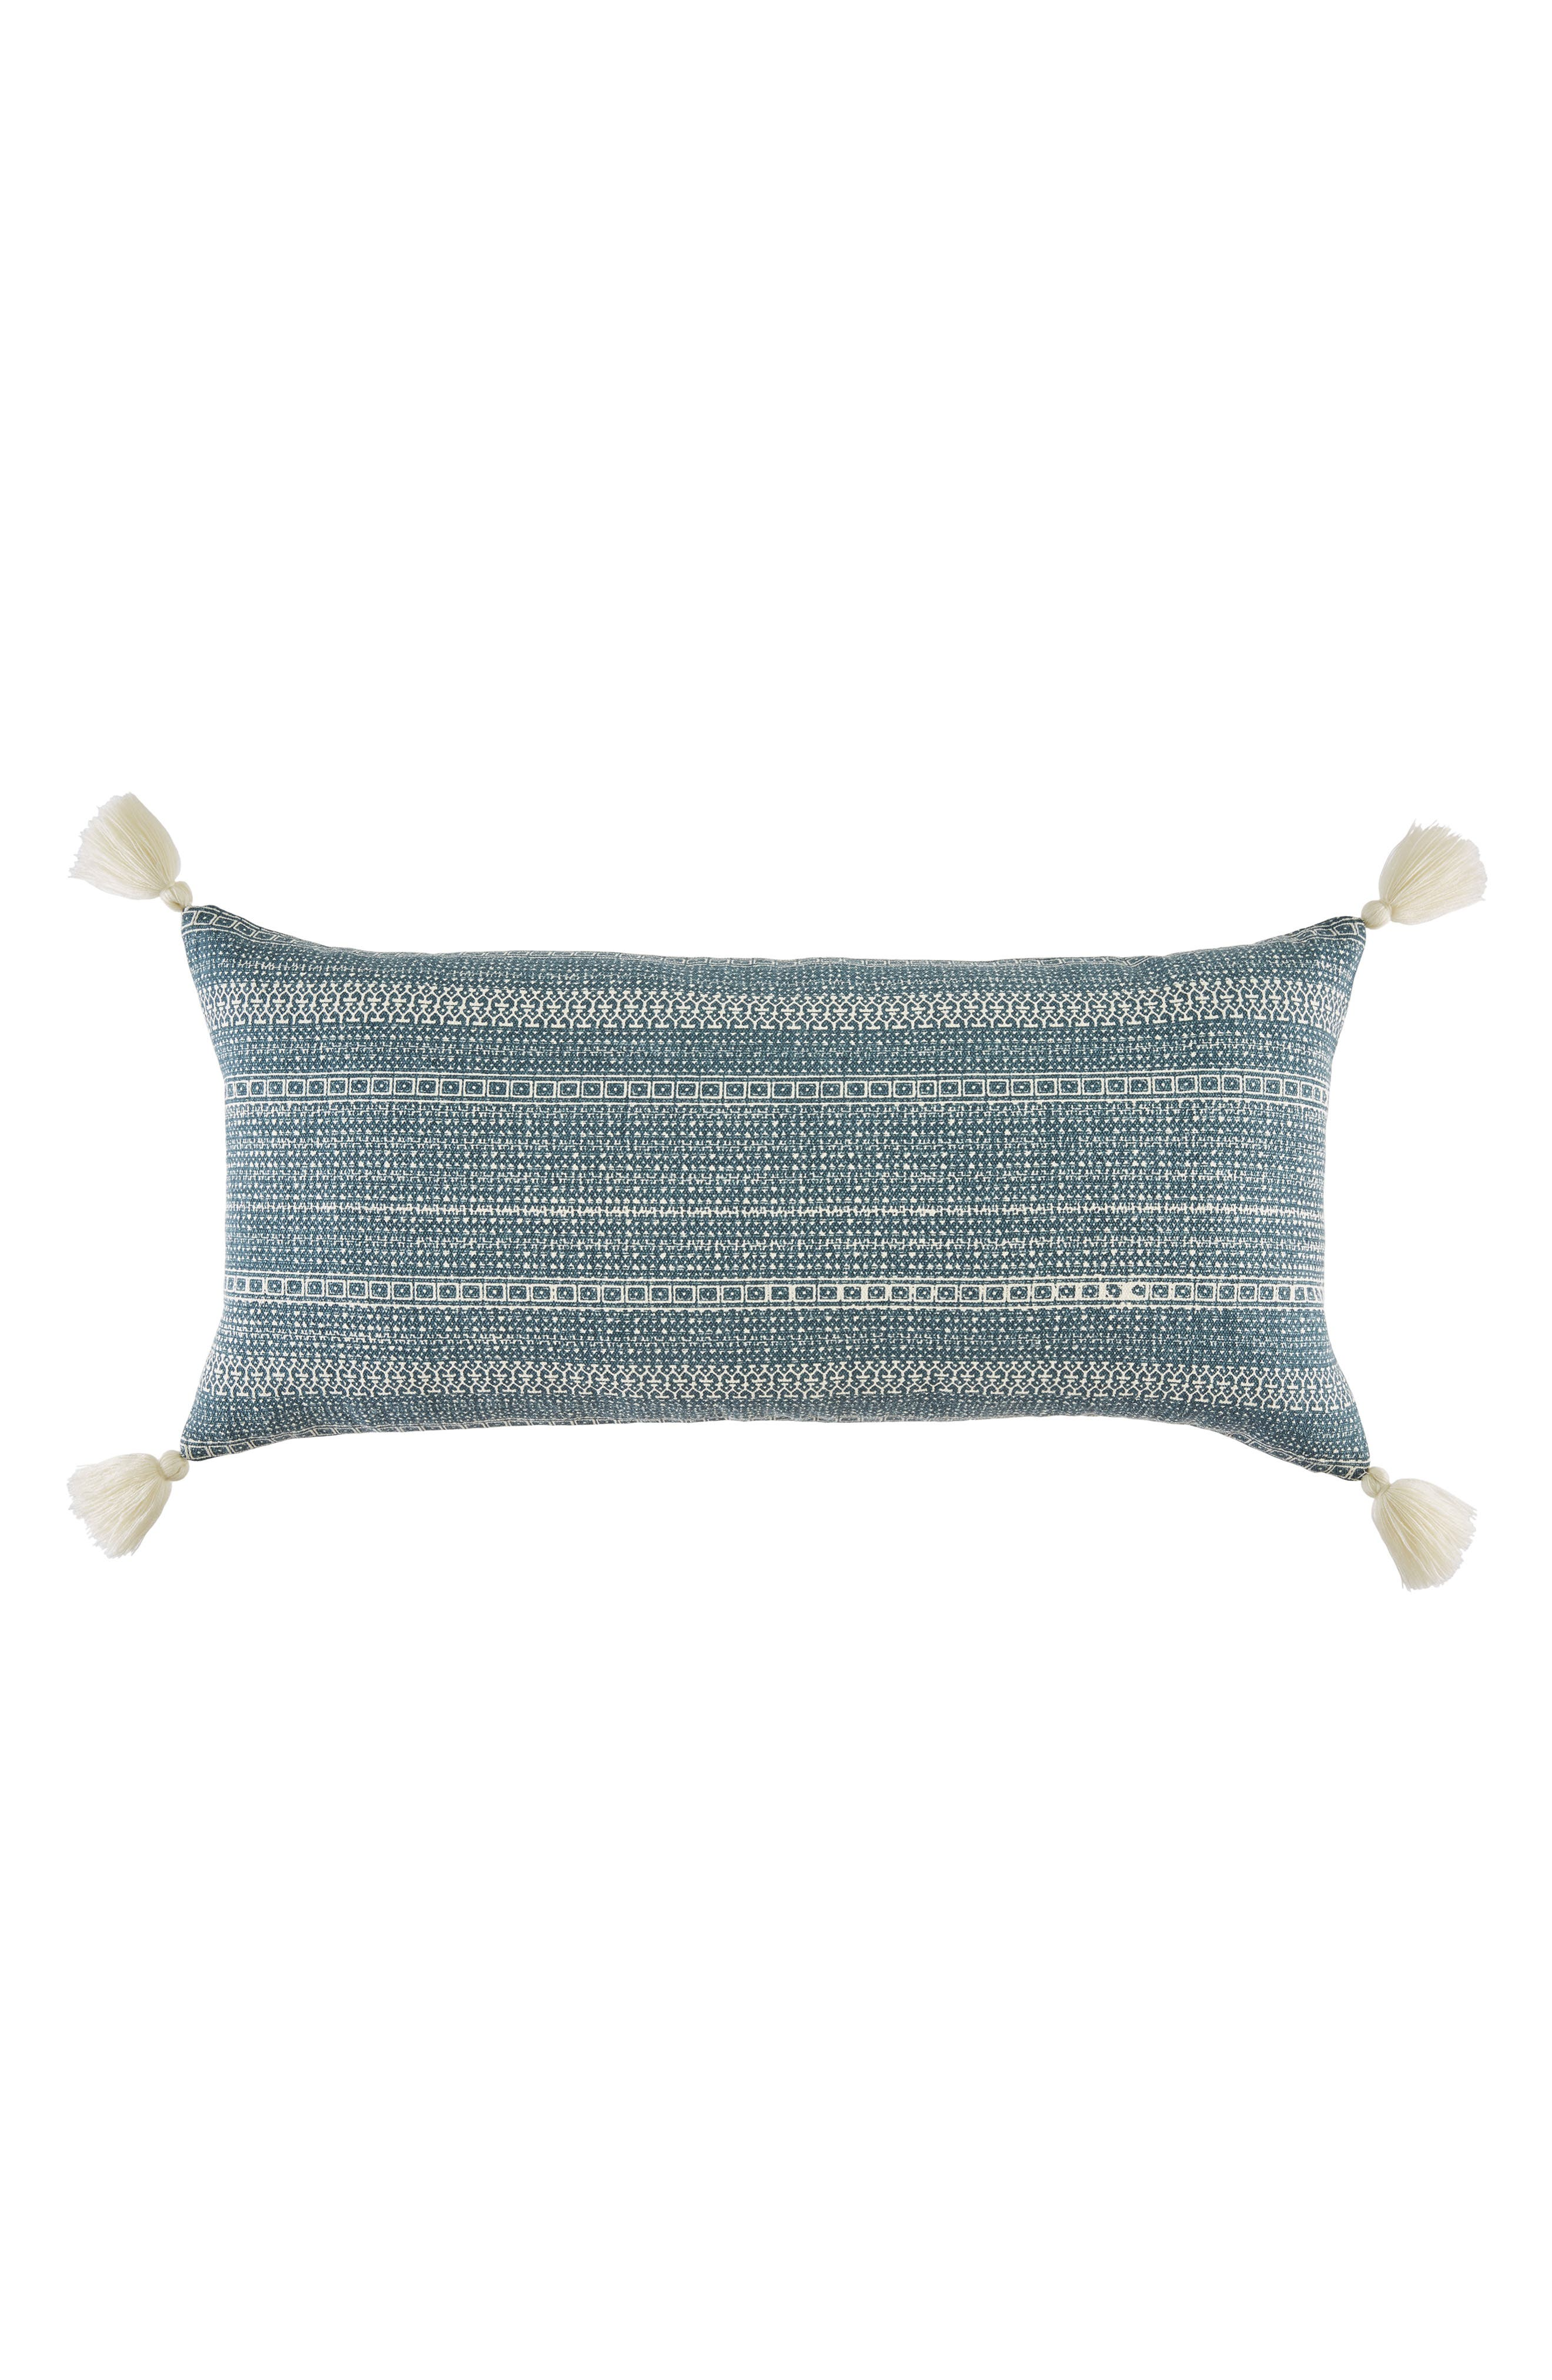 Sumi Accent Pillow,                             Main thumbnail 1, color,                             Turquoise/ Aqua